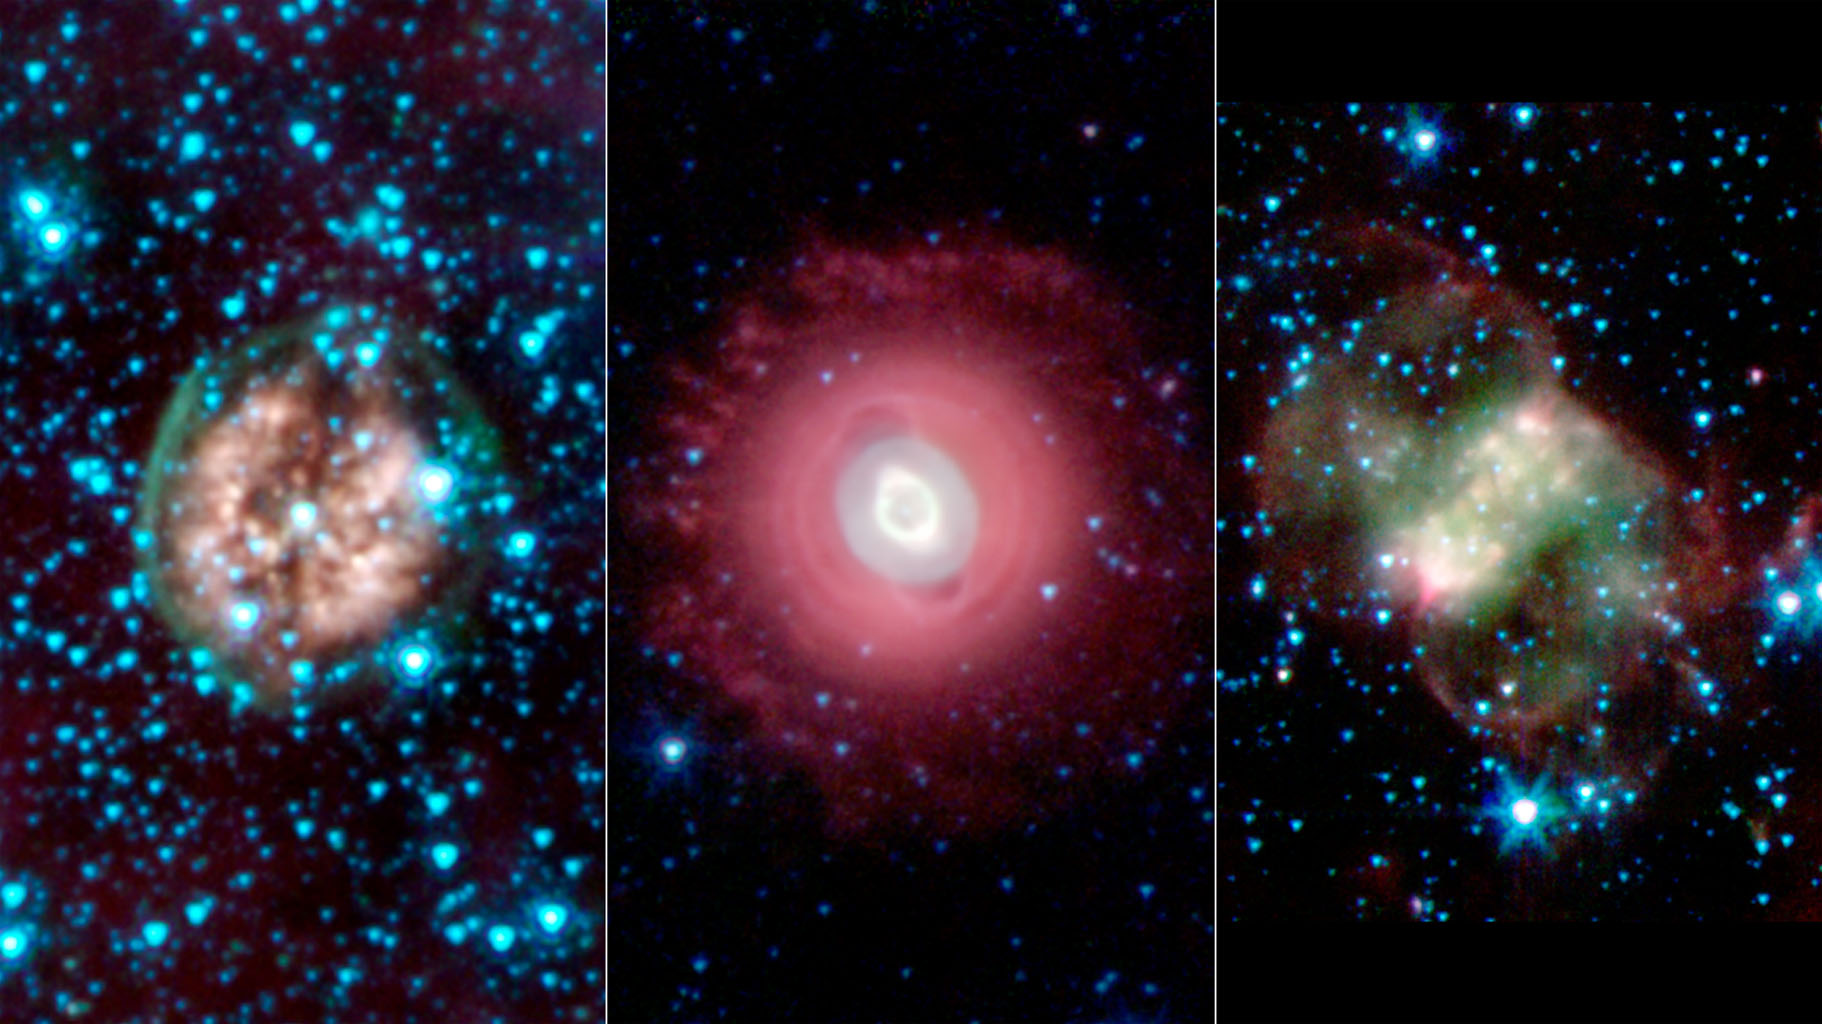 This trio of ghostly images from NASA's Spitzer Space Telescope shows the disembodied remains of dying stars called planetary nebulas. Planetary nebulas are a late stage in a sun-like star's life.